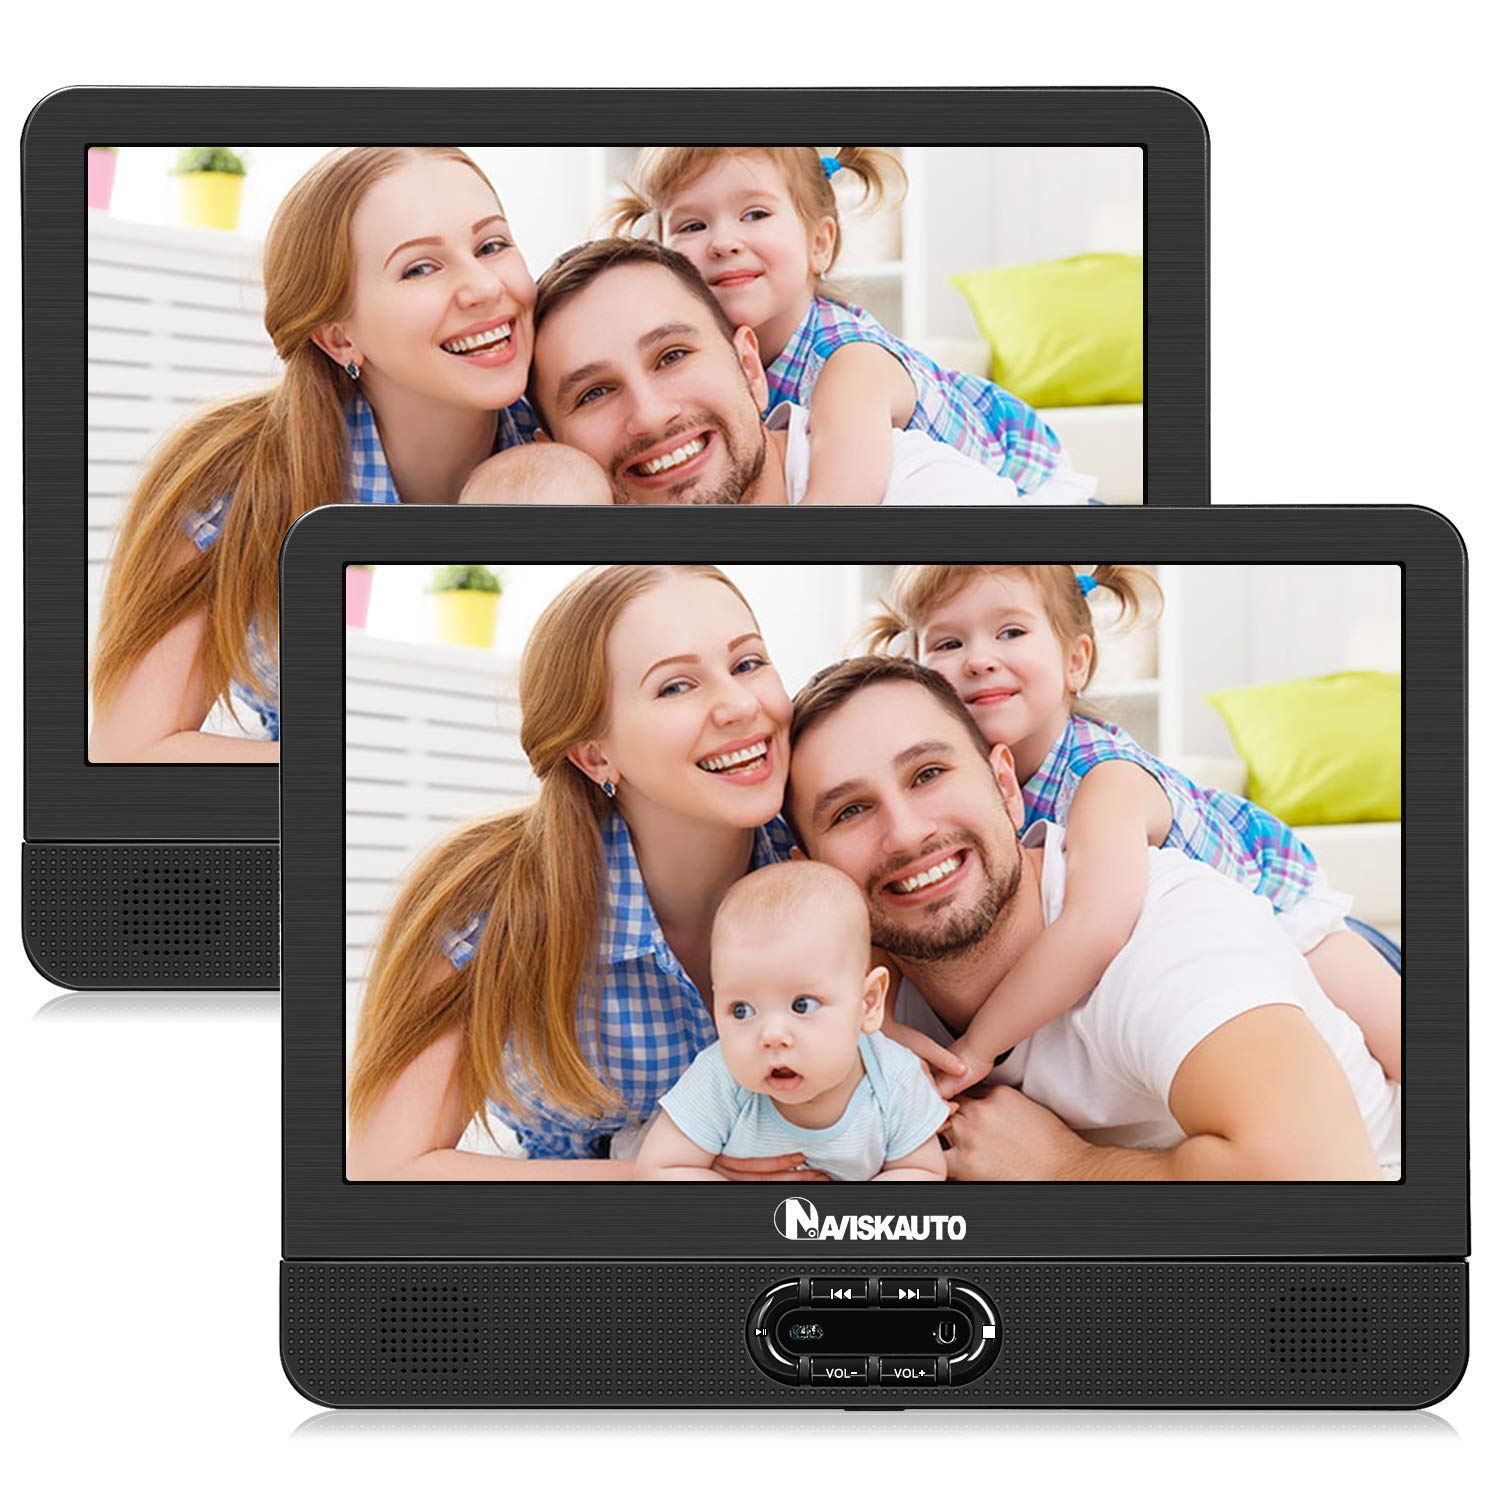 NAVISKAUTO 12'' Portable Dual Screen DVD Player for Car with Built-in Rechargeable Battery and Last Memory, Supports USB/SD Card Playback